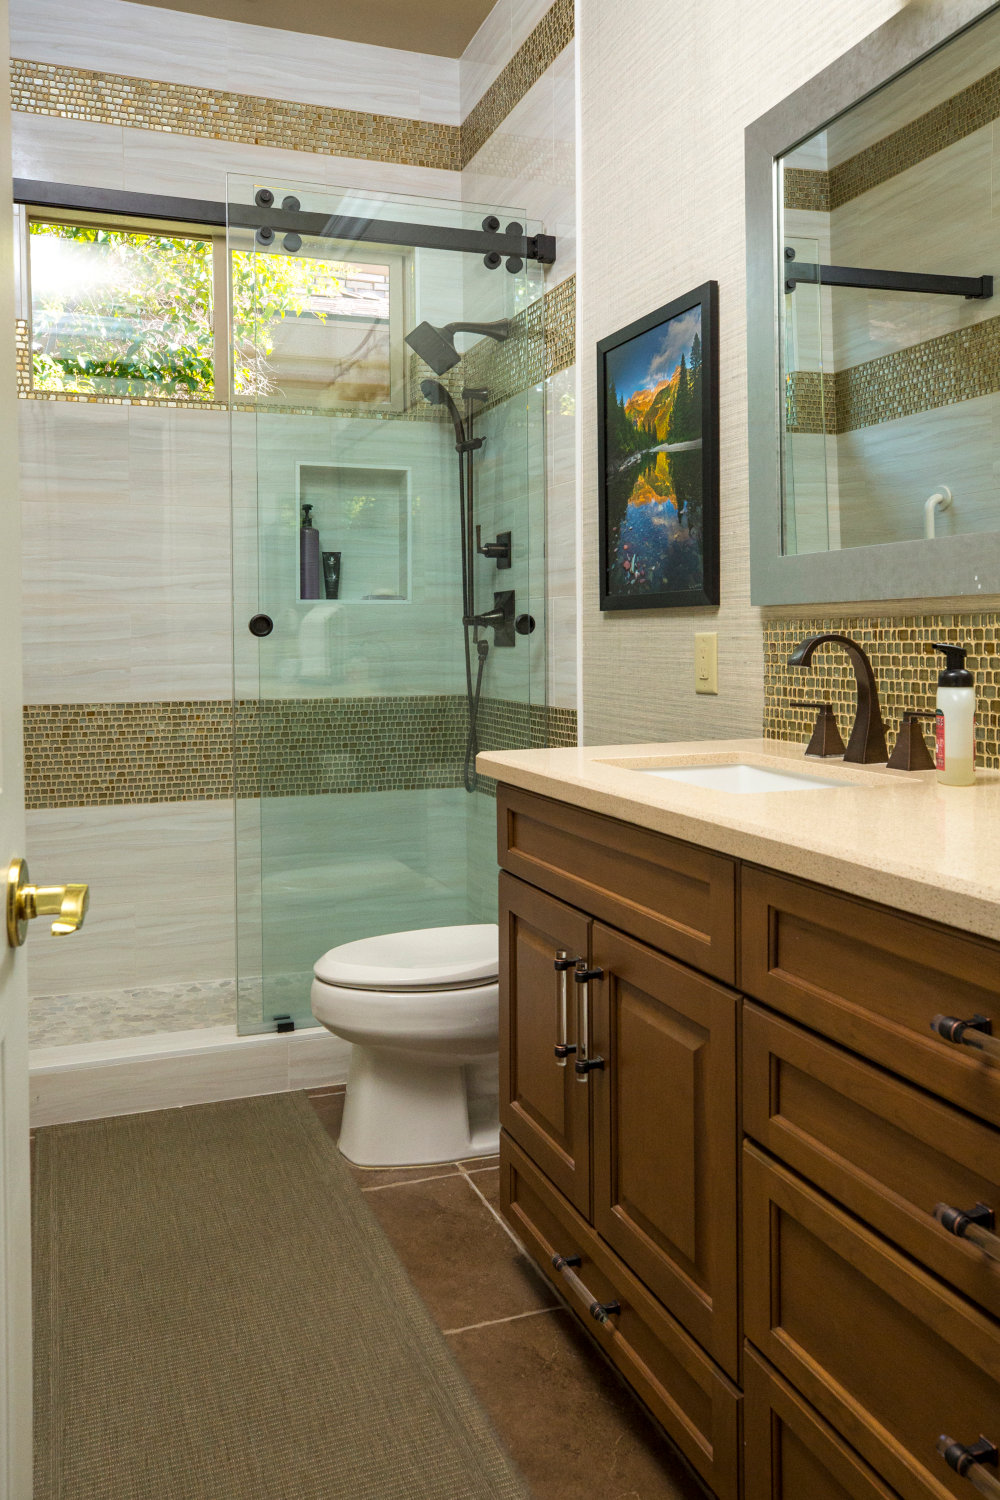 Walk-in shower bath with gold backsplash, light wood vanity, oil rubbed bronze accents.